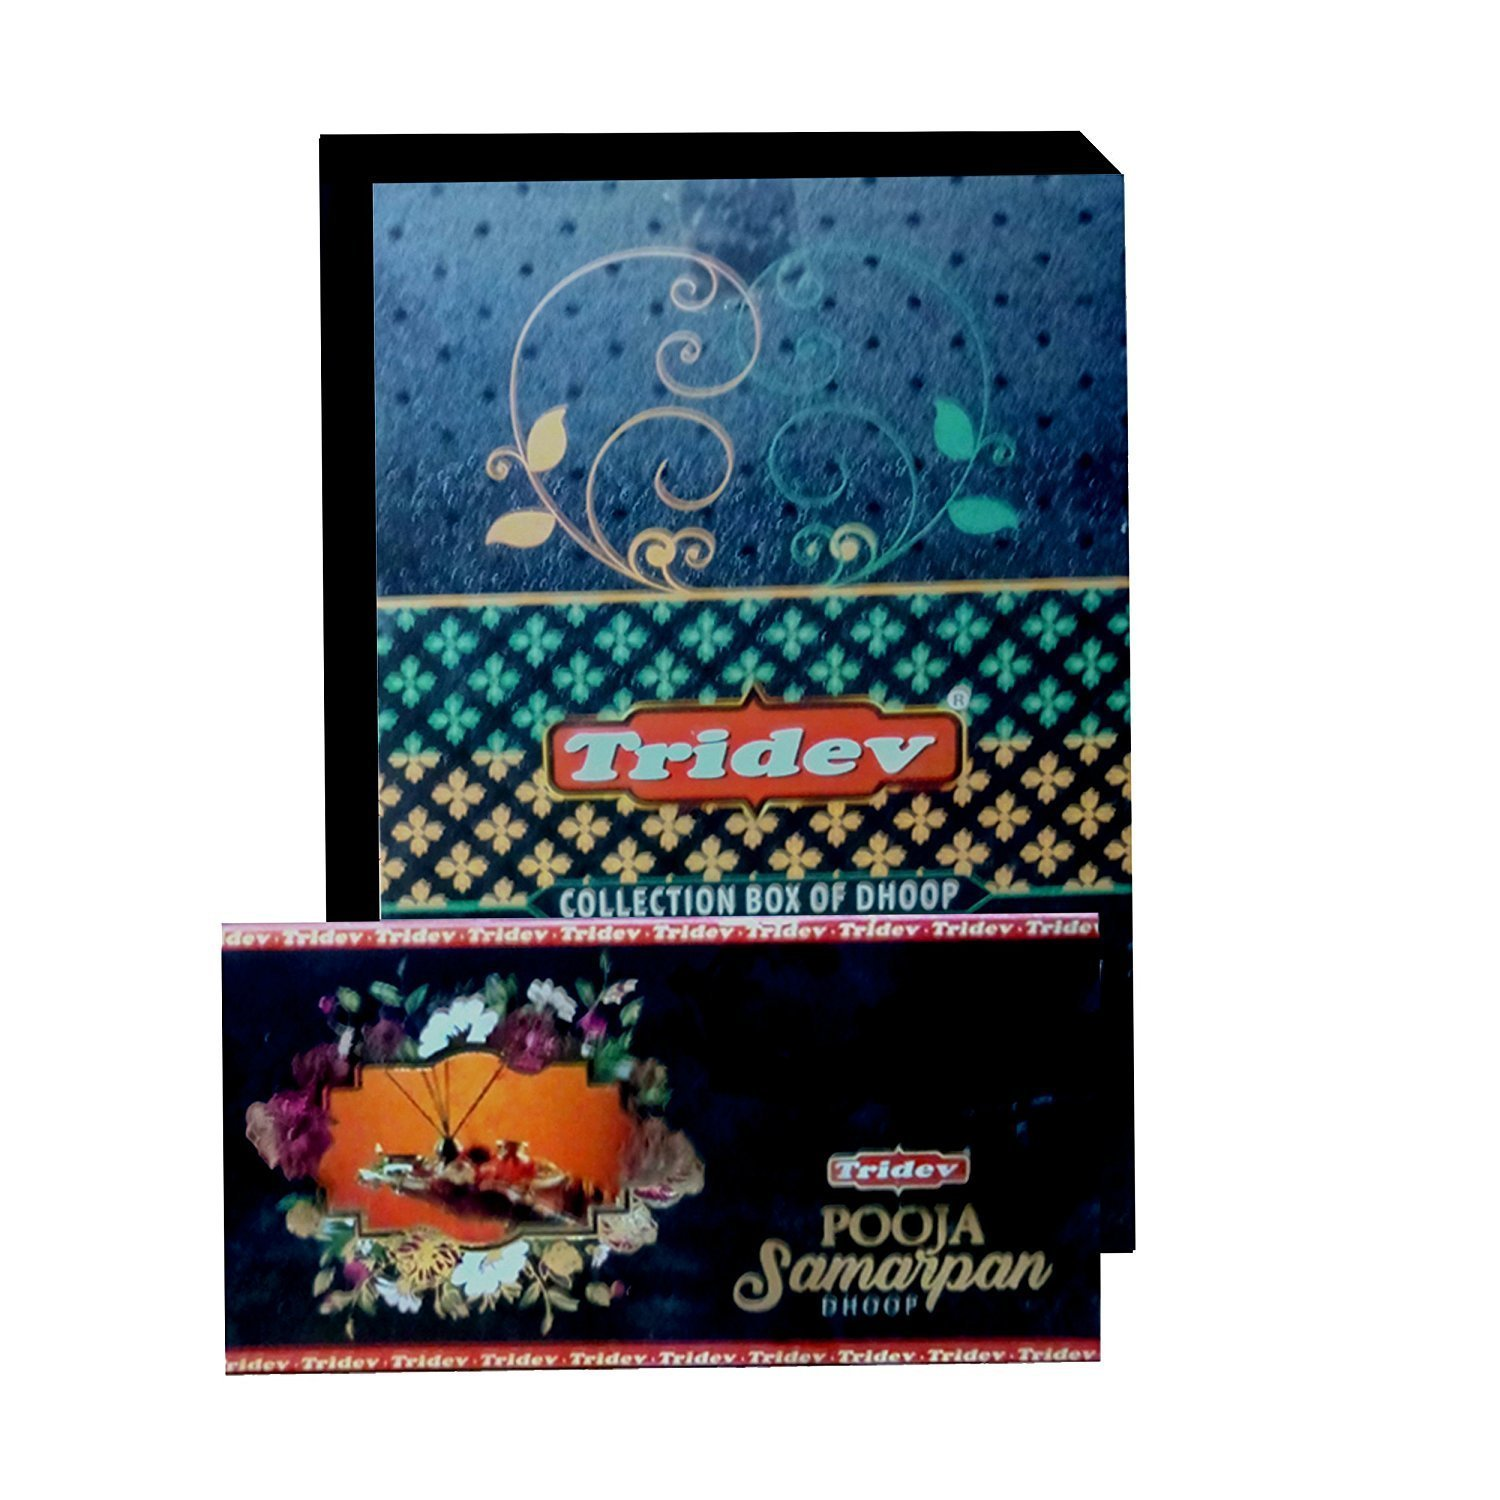 Divine Incense Holder Free withTridev Pooja Samarpan Premium Dhoop incense 1440 Grams Box | 12 Packs of 120 Grams in a Box | Export Quality by Divine